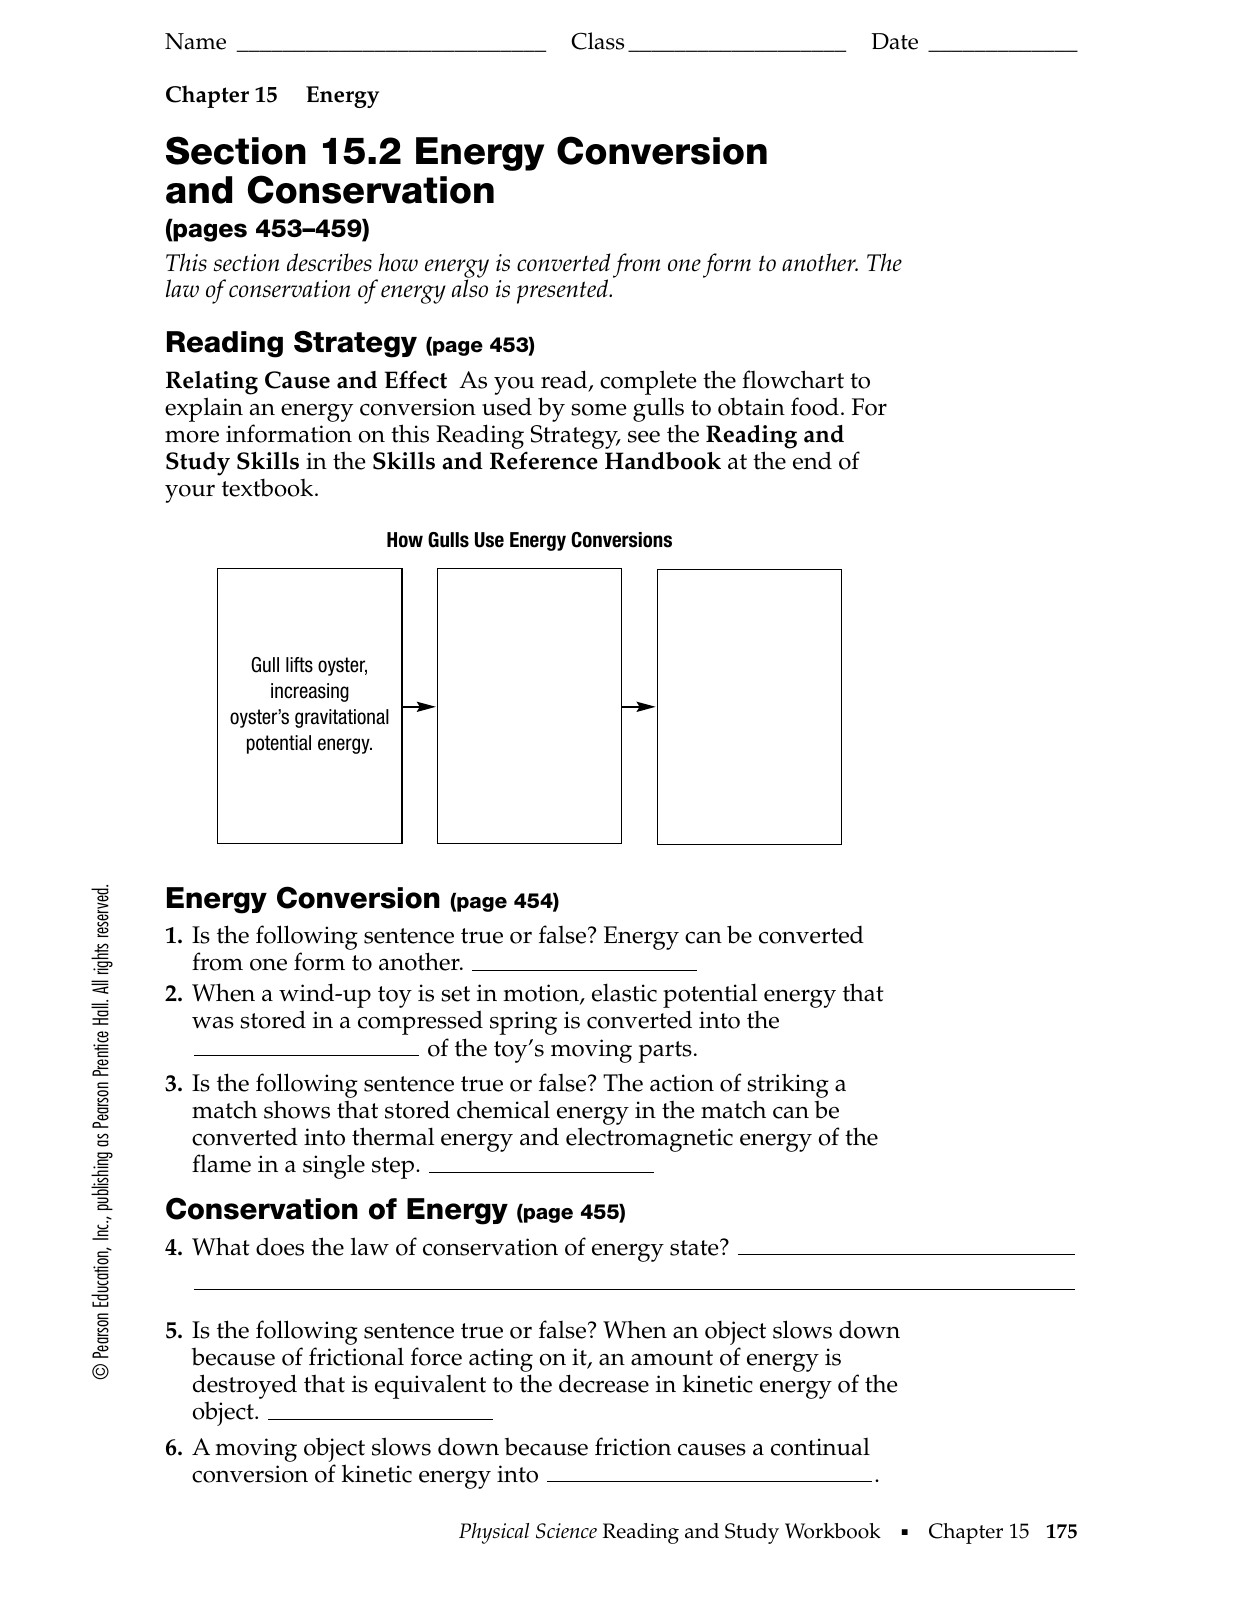 Section 152 Energy Conversion And Conservation Worksheet